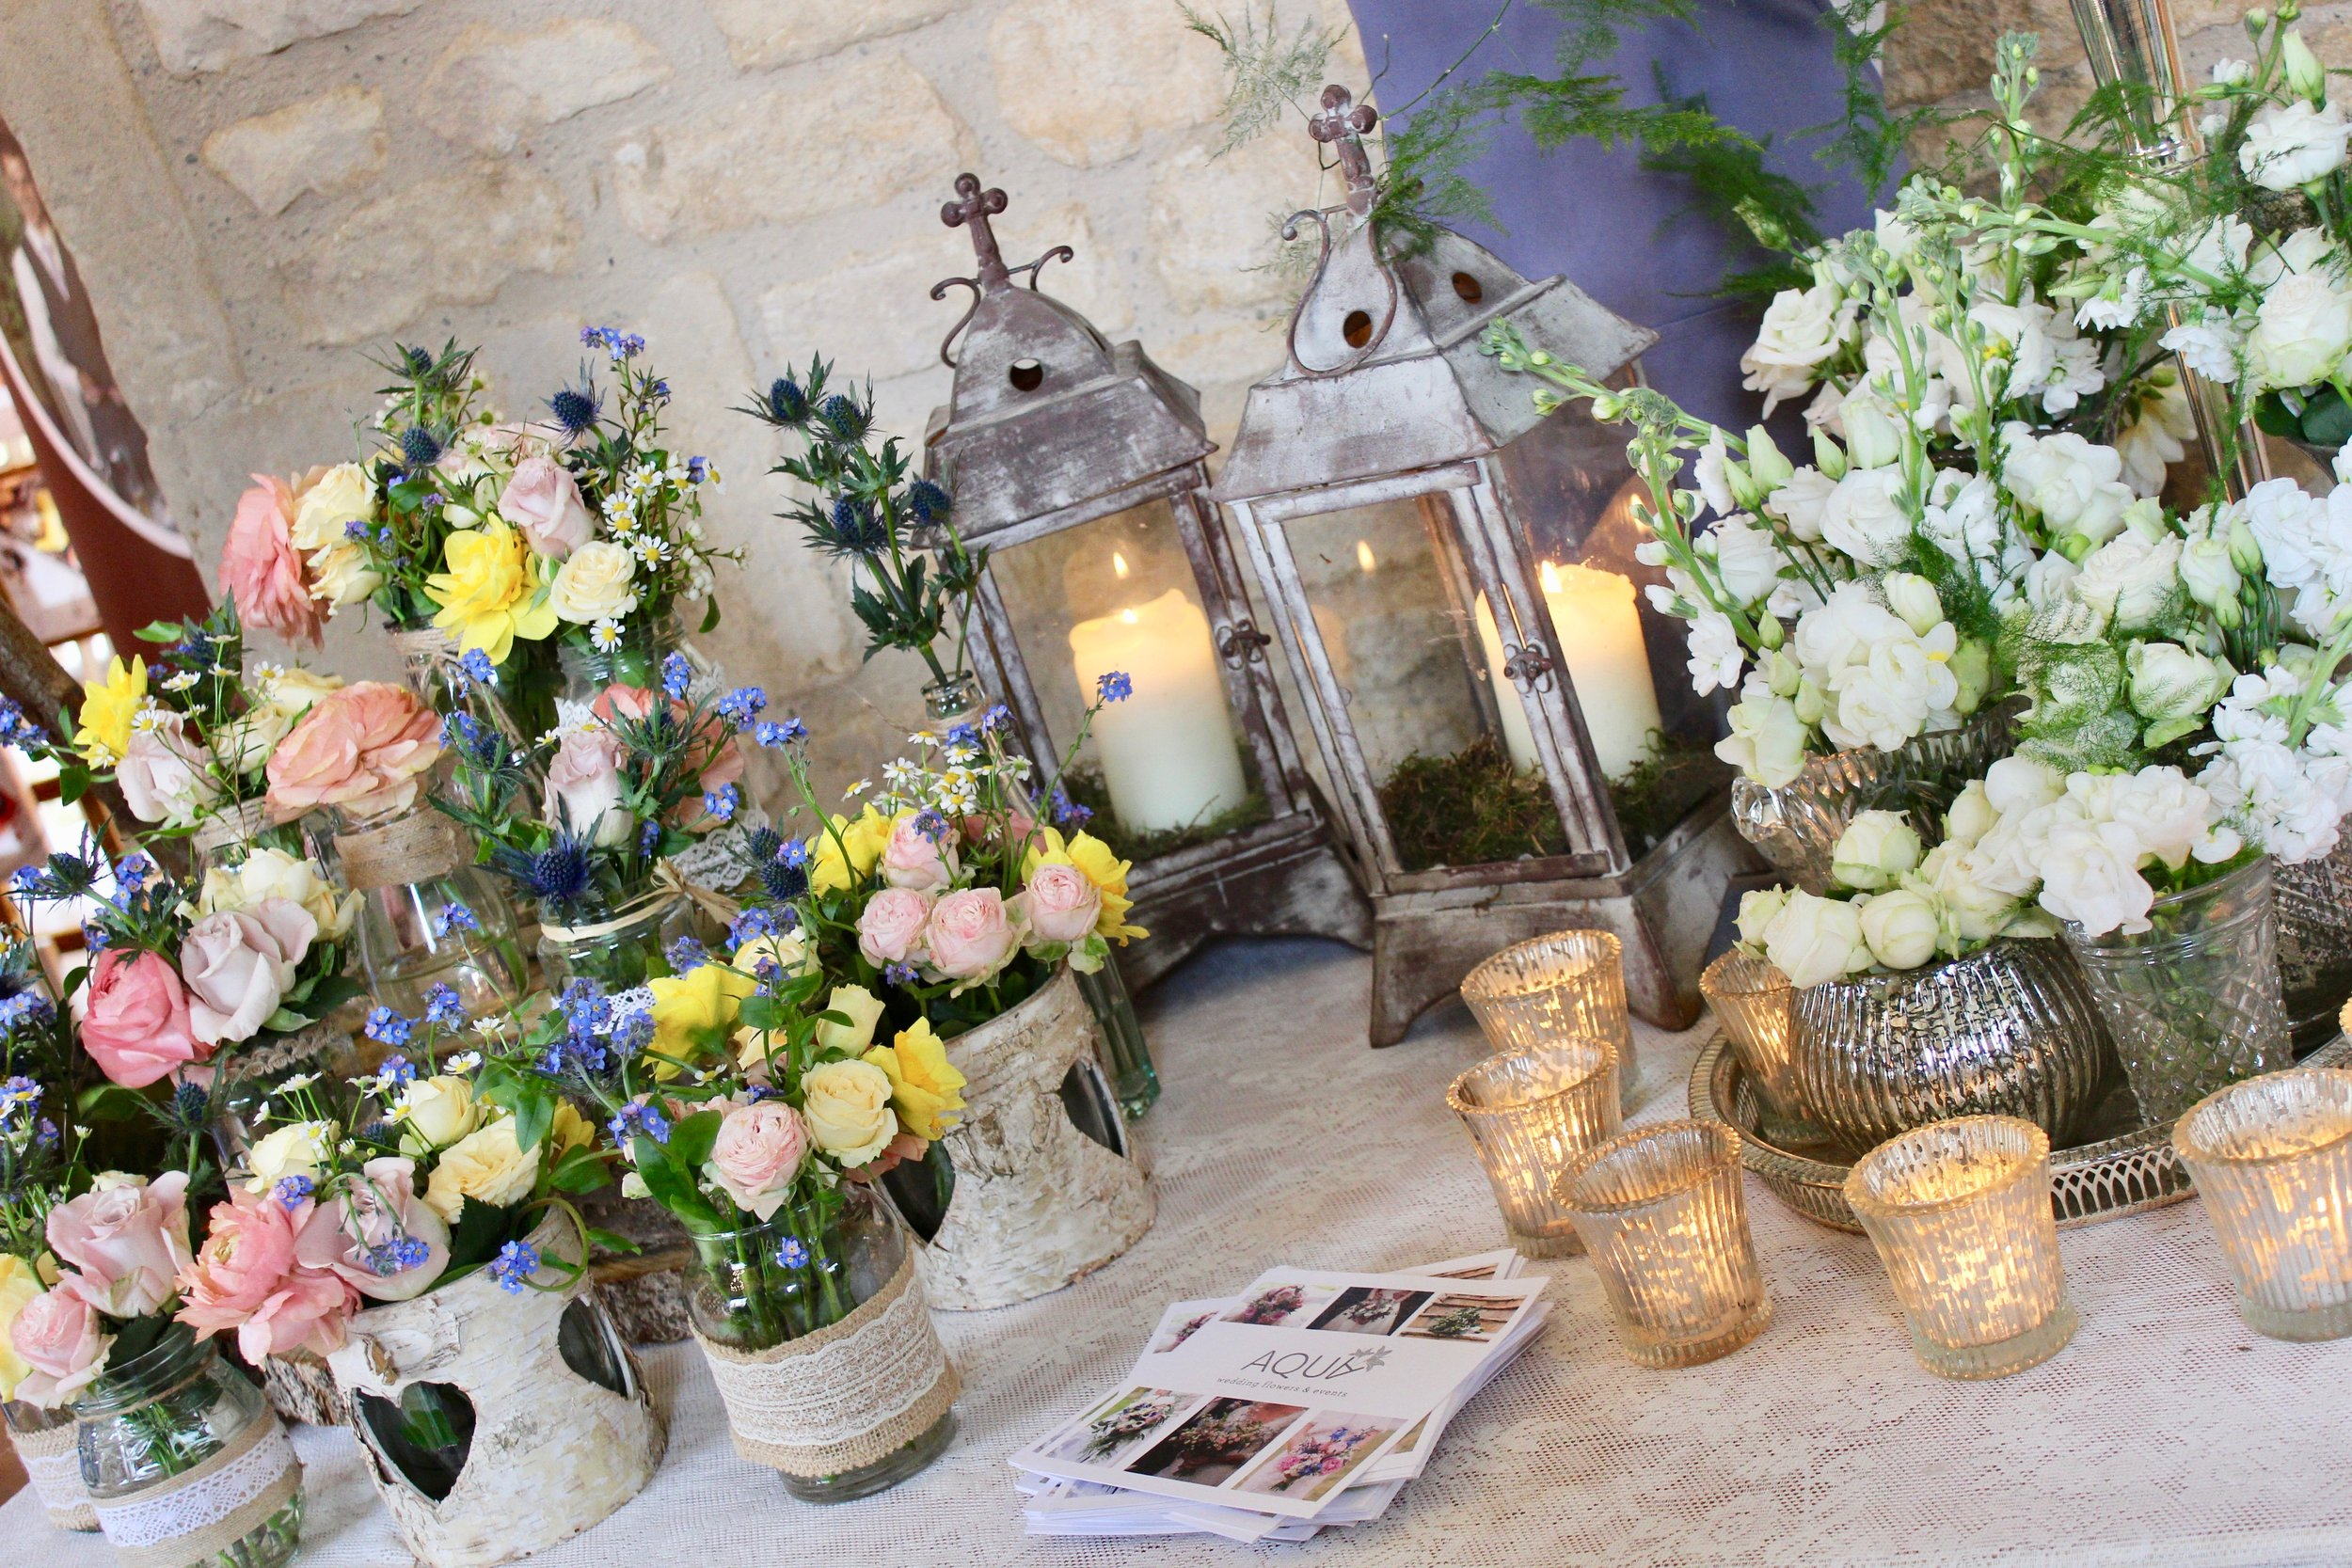 Upcote Barn Wedding Fair